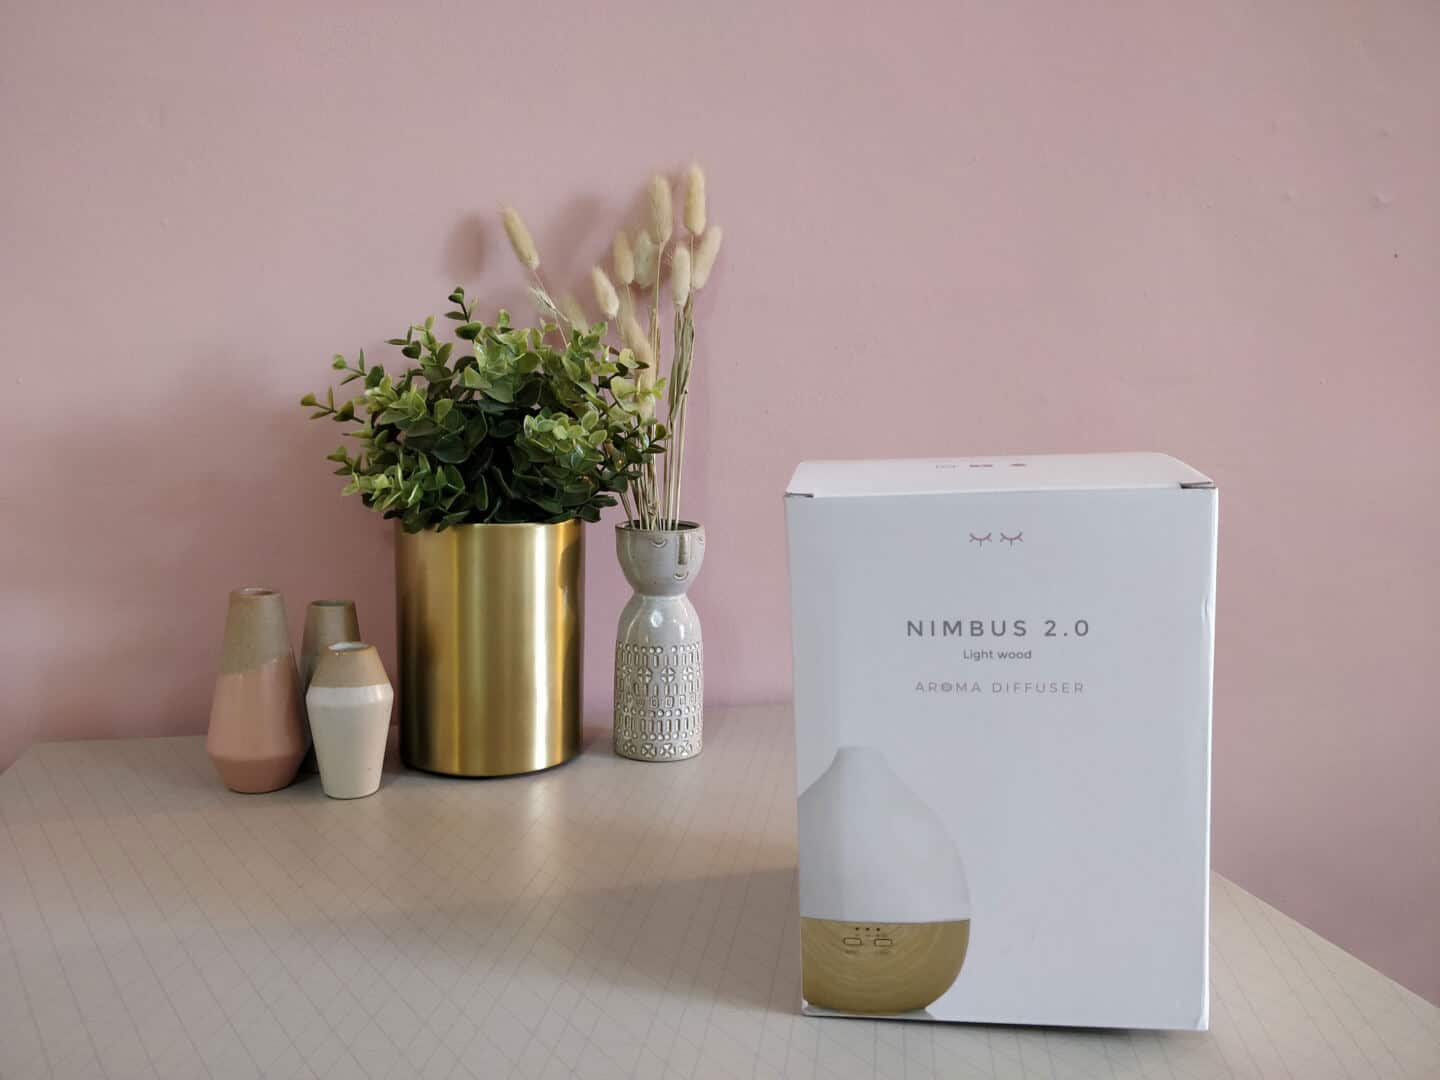 Smellacloud aroma diffuser in a box on a table with plants and vases